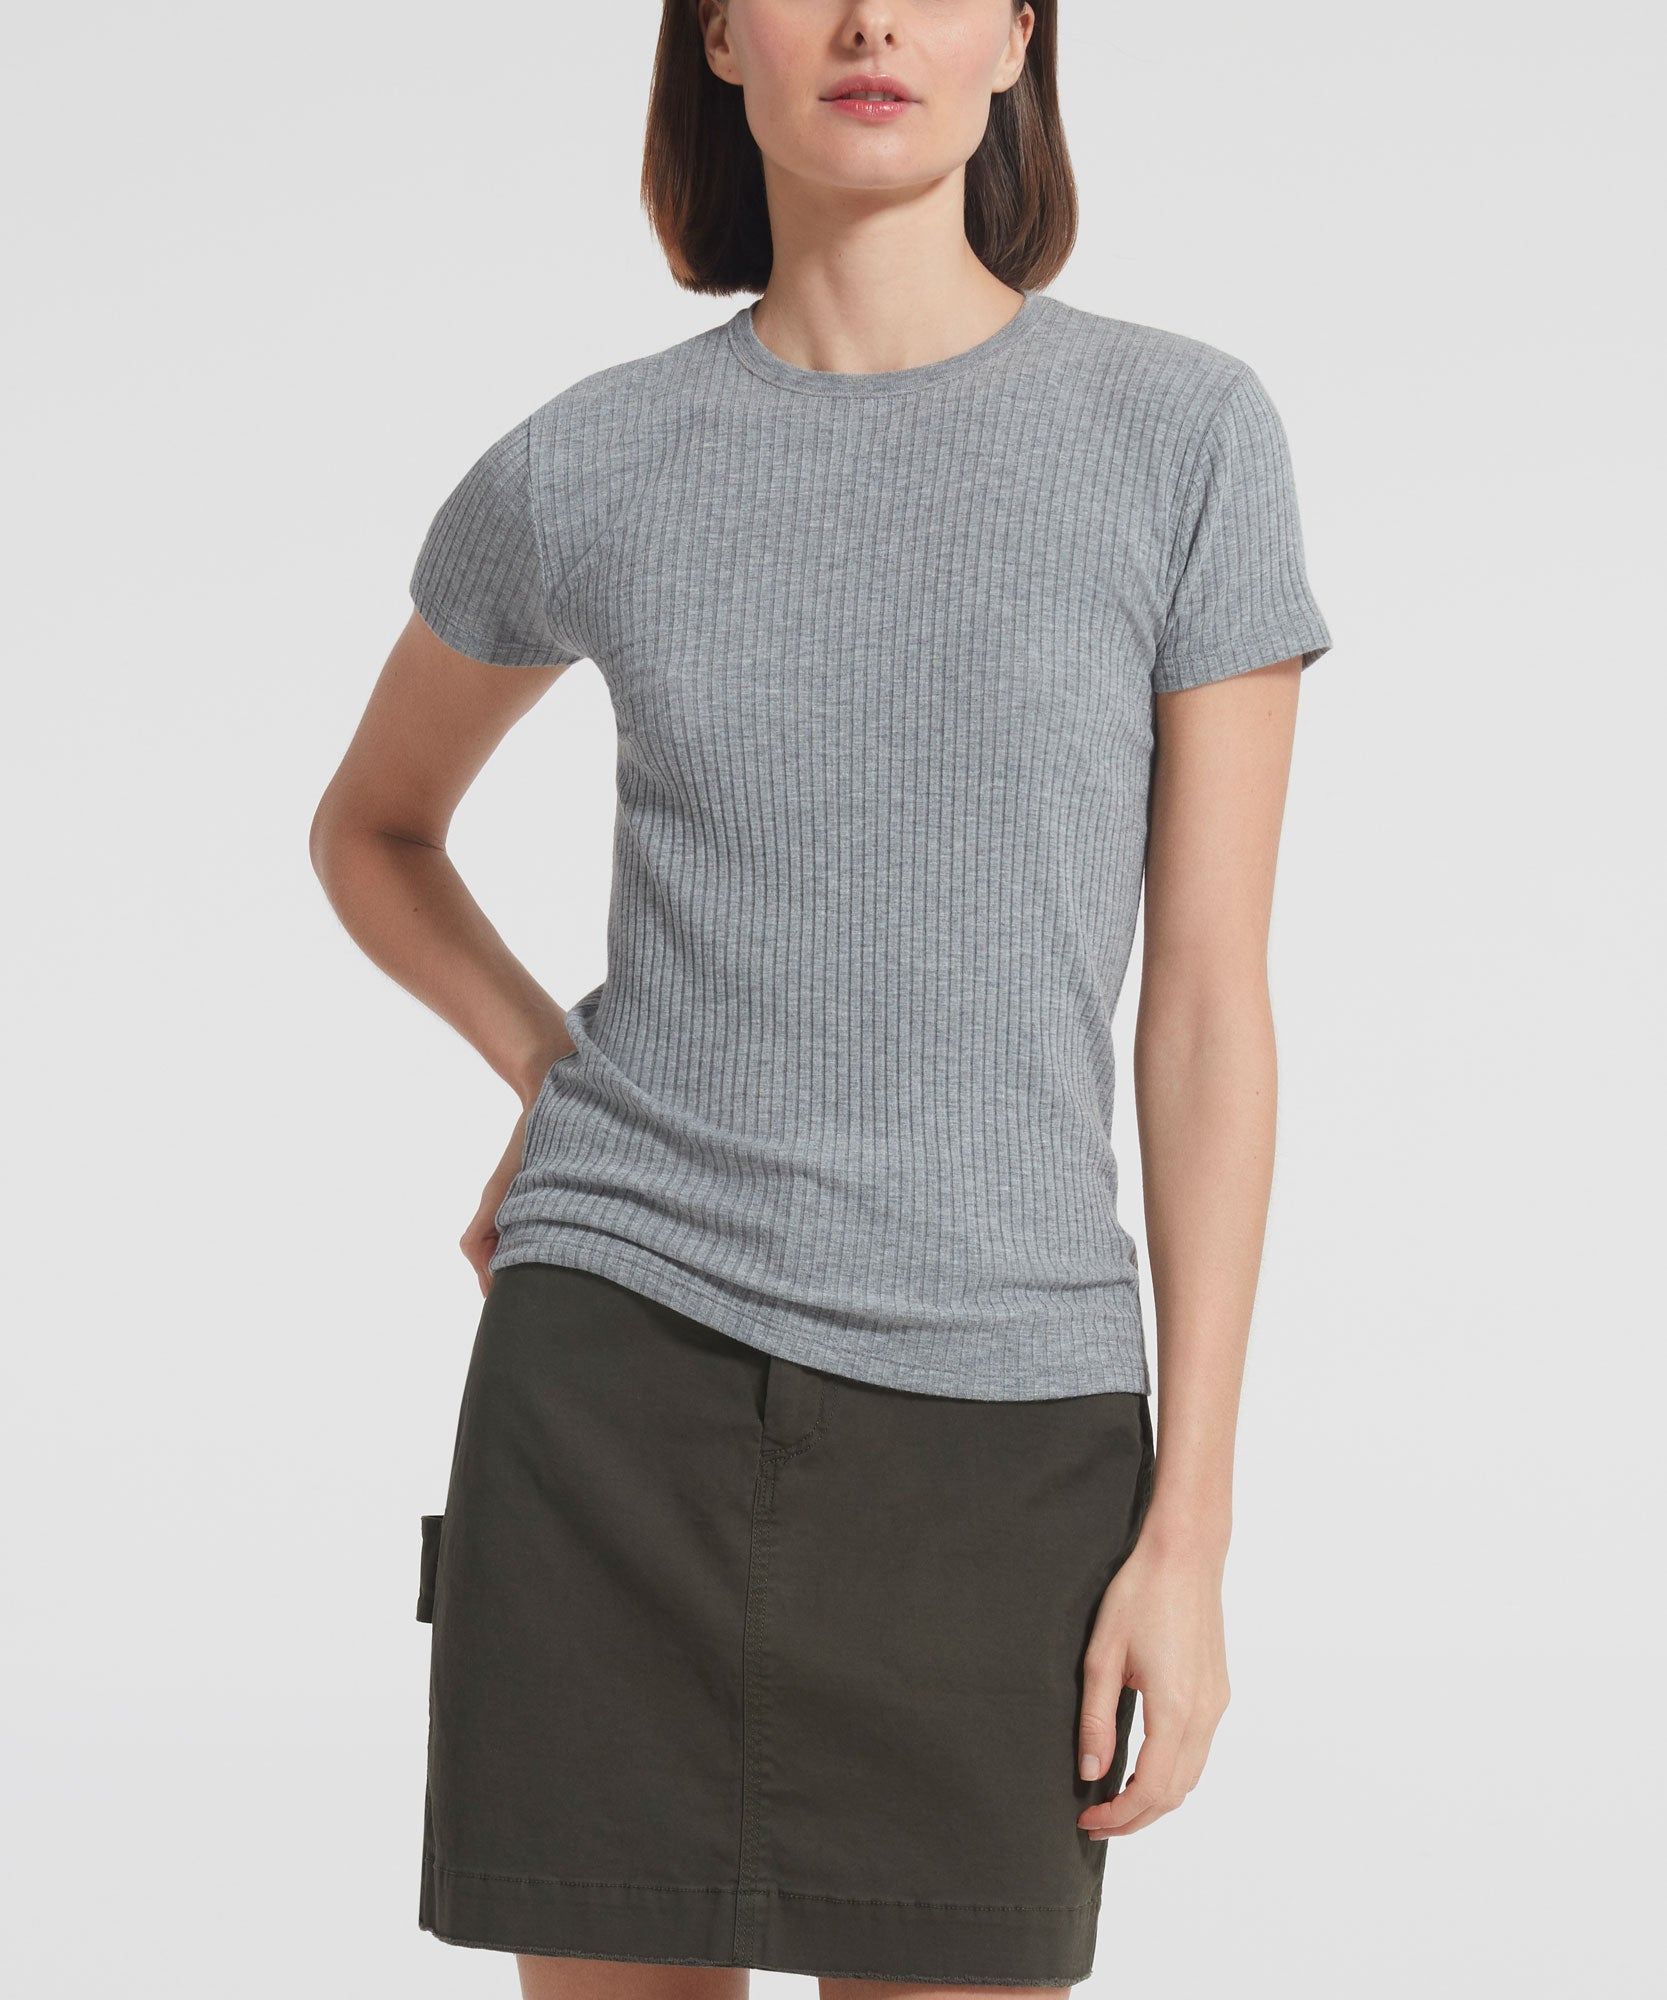 Heather Grey Modal Rib Cap Sleeve Top - Women's Ribbed T-Shirt ATM Anthony Thomas Melillo